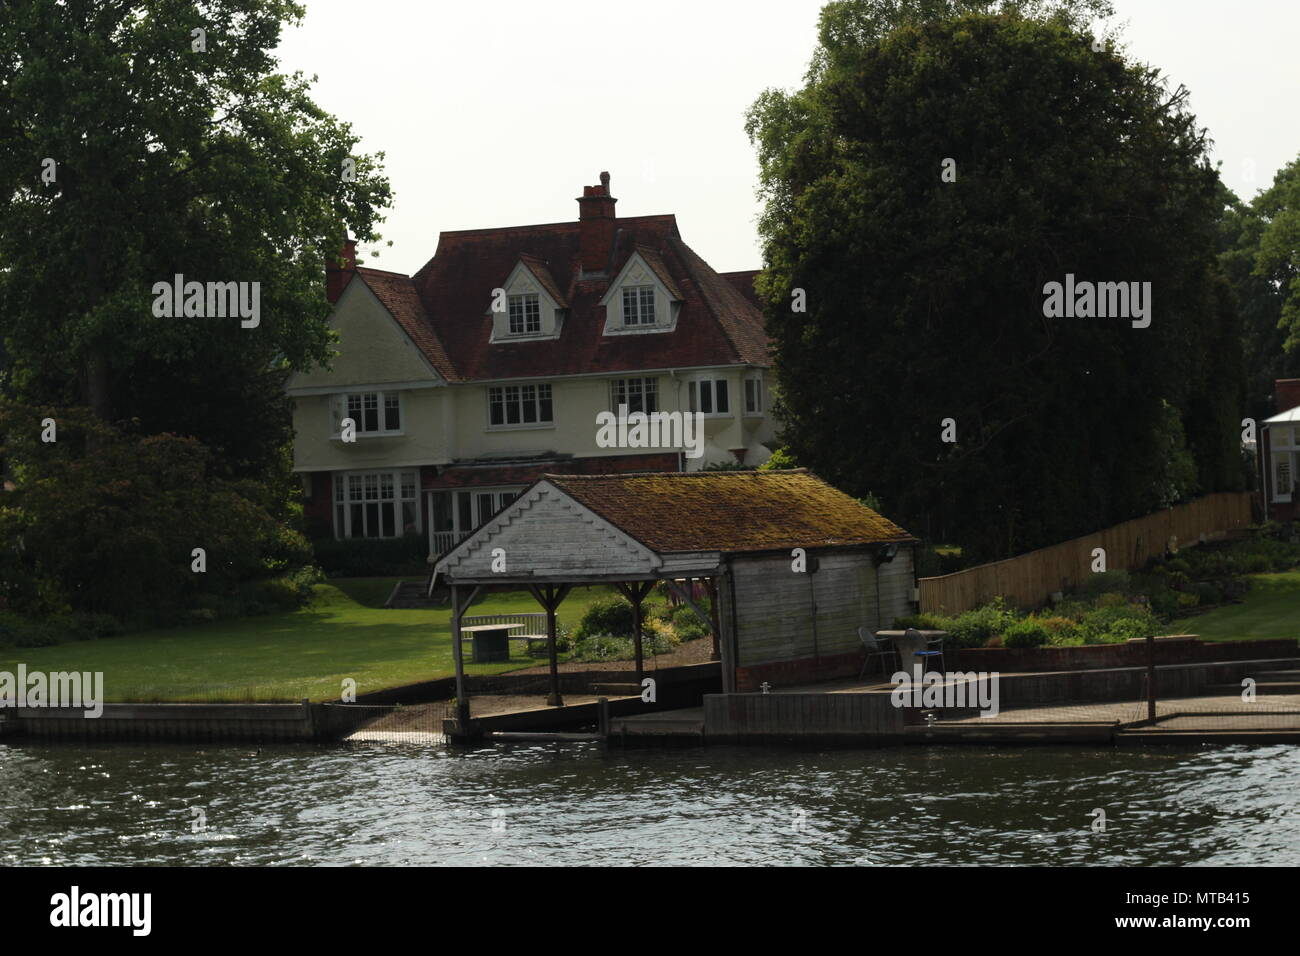 Character properties on River Thames at Henley-on-Thames Oxfordshire, Britain. - Stock Image